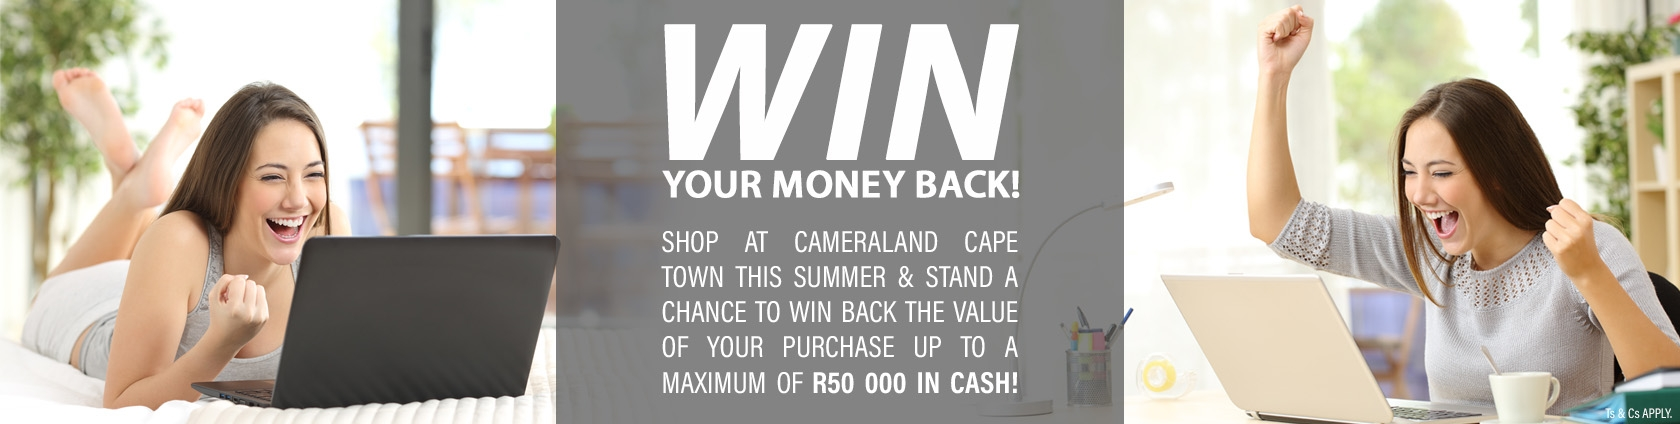 WIN BACK YOUR MONEY up to R50 000 in cash!